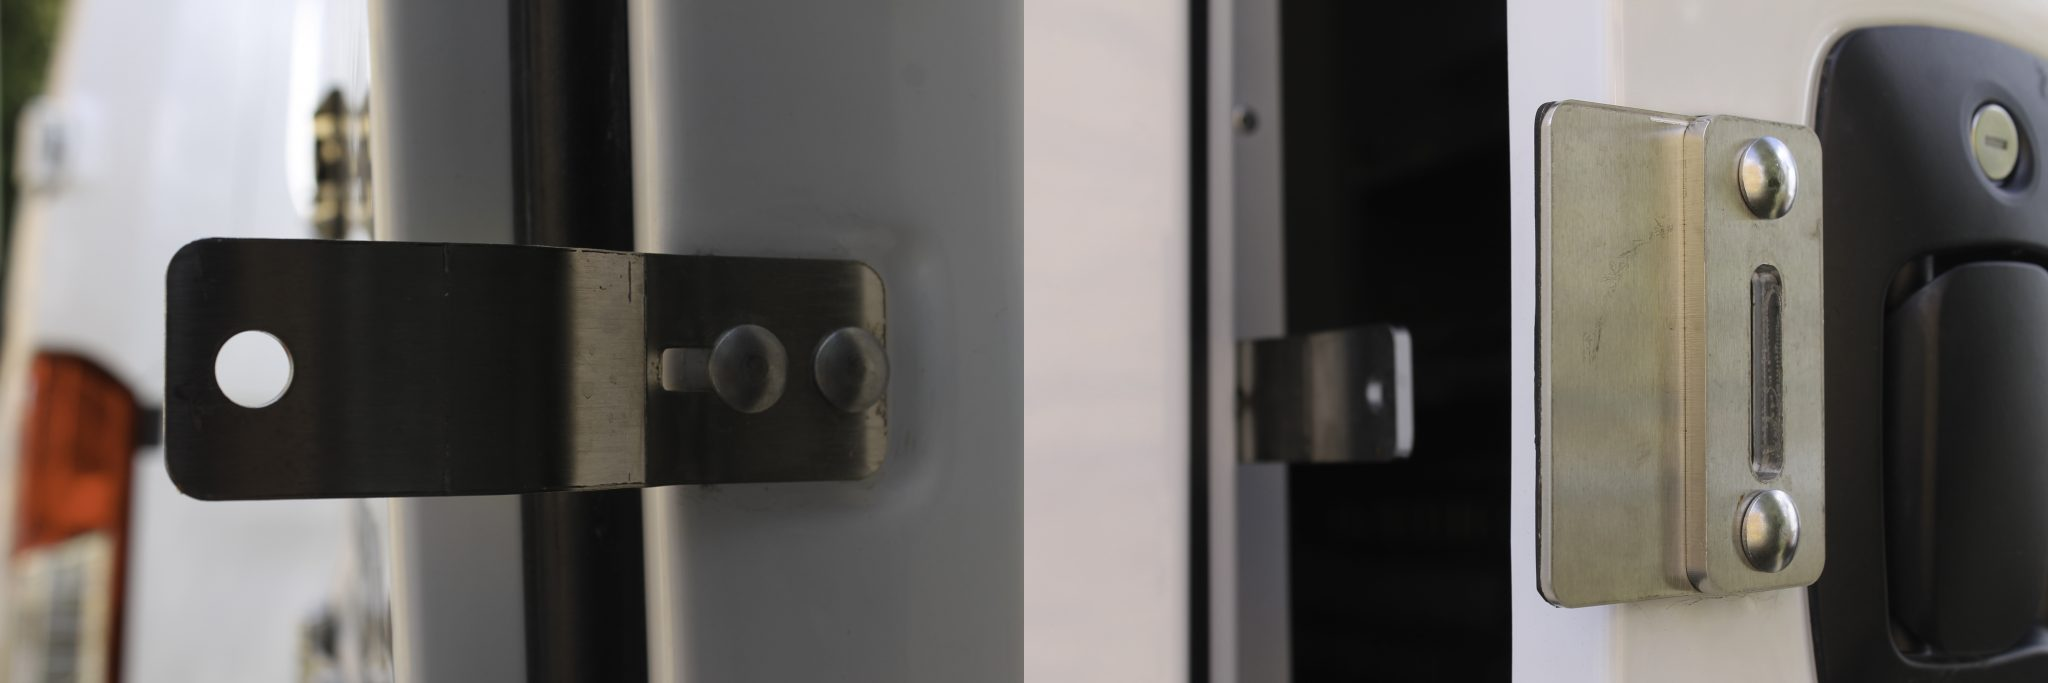 Image of the hasps used to secure a puck lock on a maranda/fiber optic splicing capsule. The left side of the image shows the piece the pin of the puck lock goes through. The right side shows the slot that the hasp will go through on the right door. Once the hasp is through the hole place your puck lock and lock it in place.